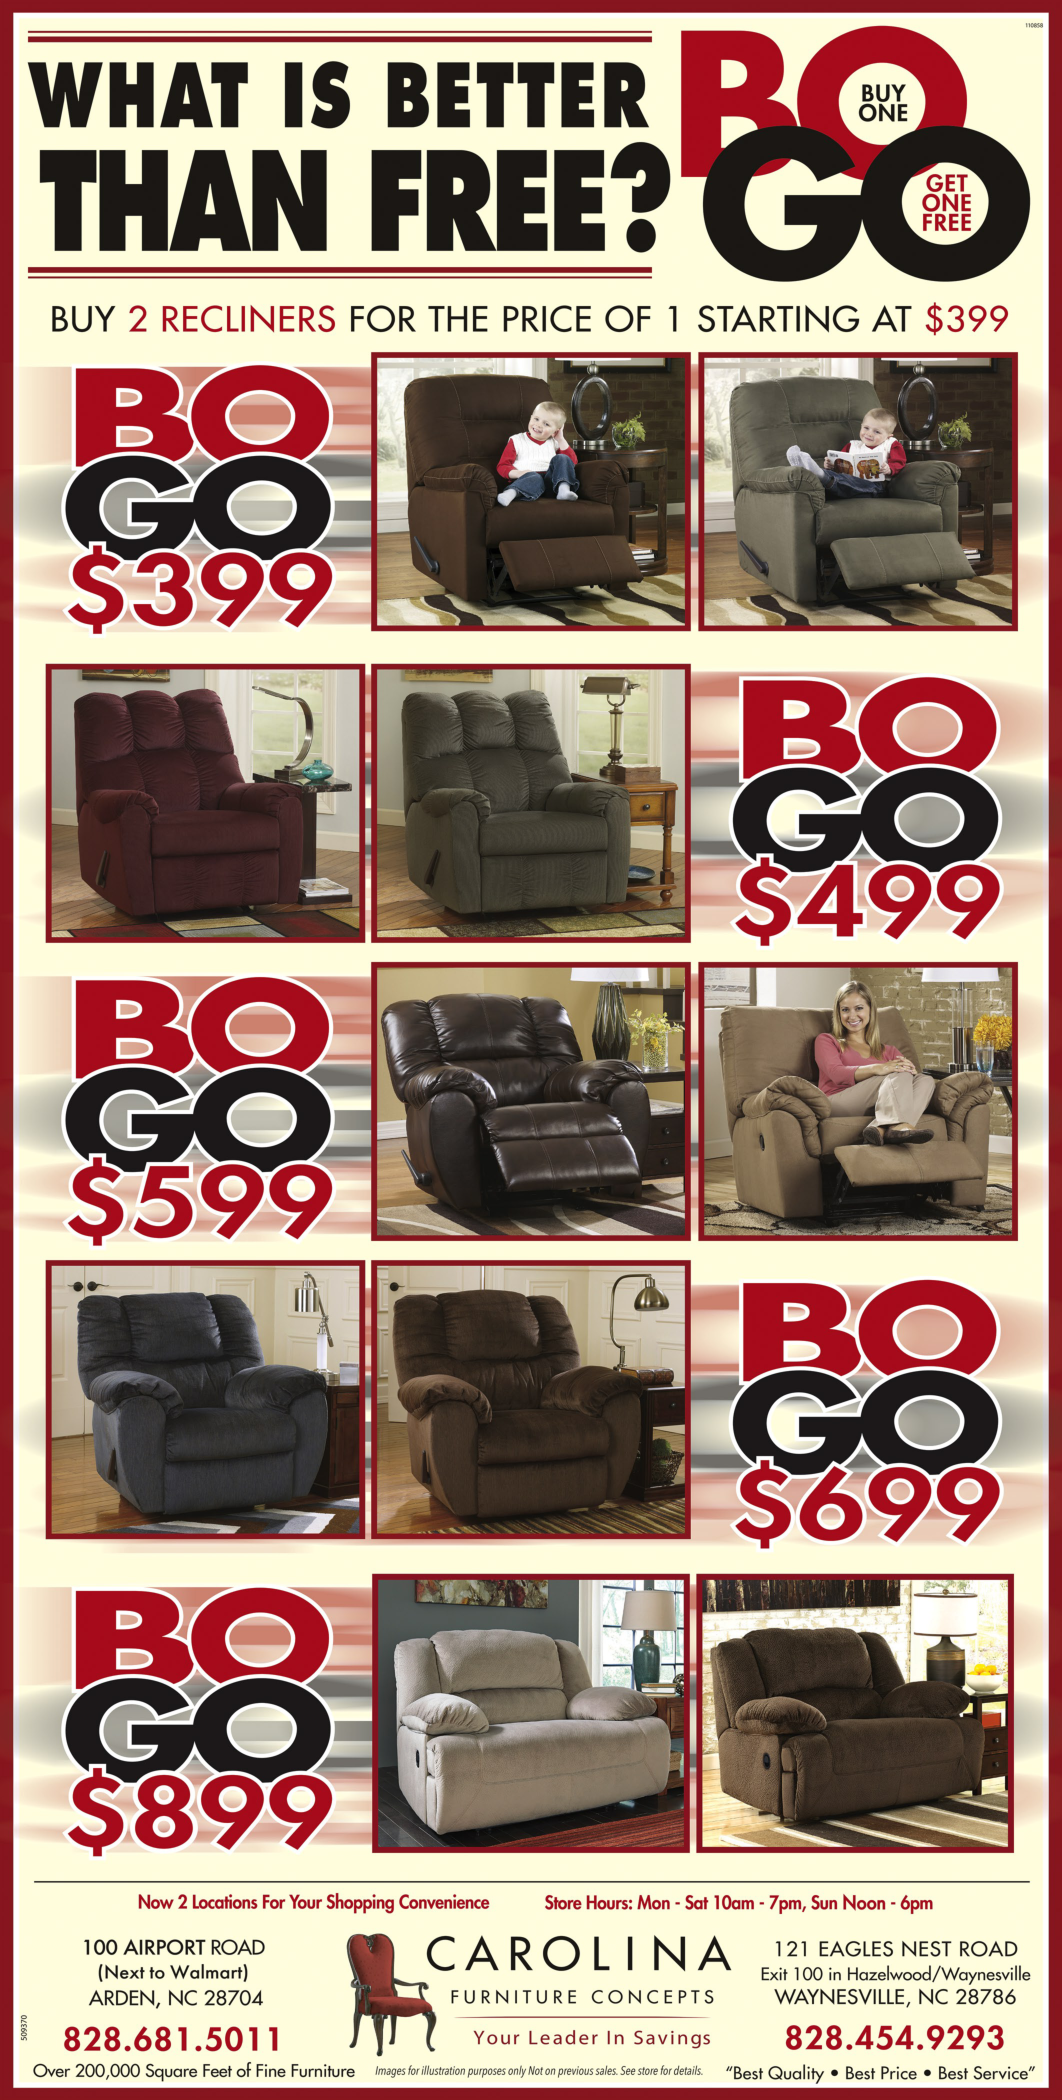 Buy one and get one FREE offer and low pricing on recliners by